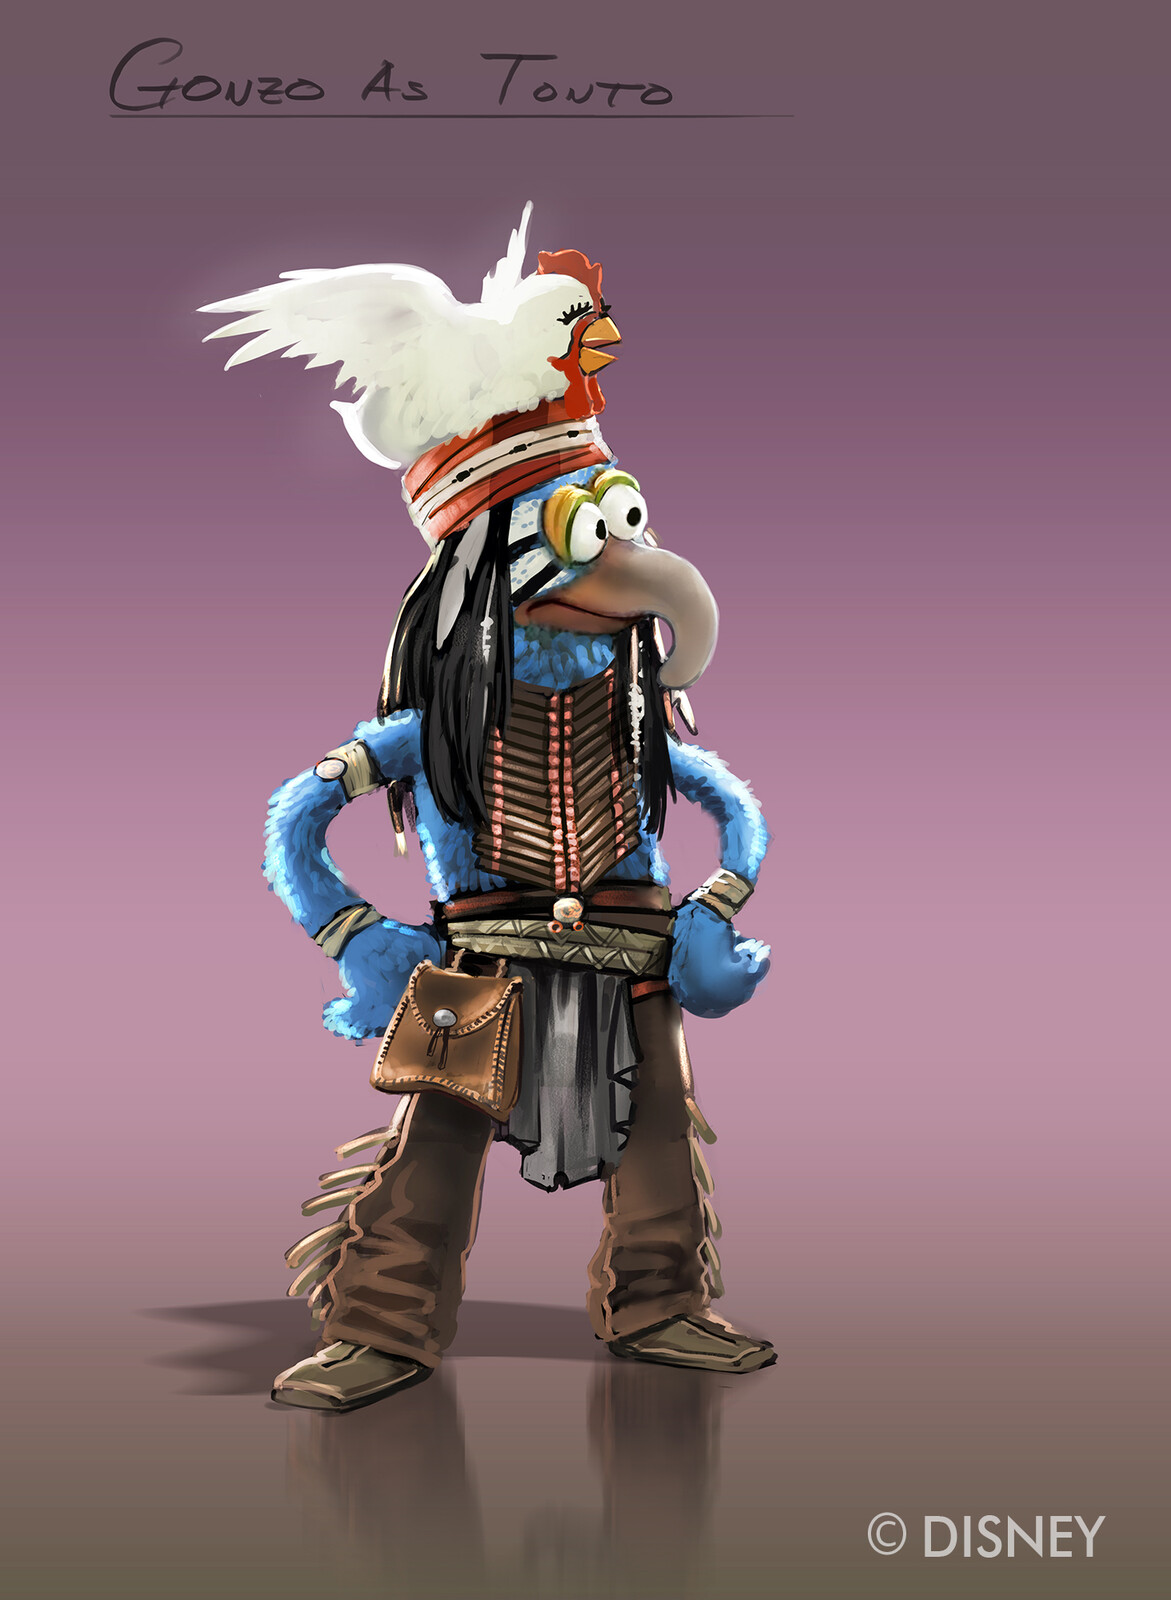 Gonzo the Great Character designs